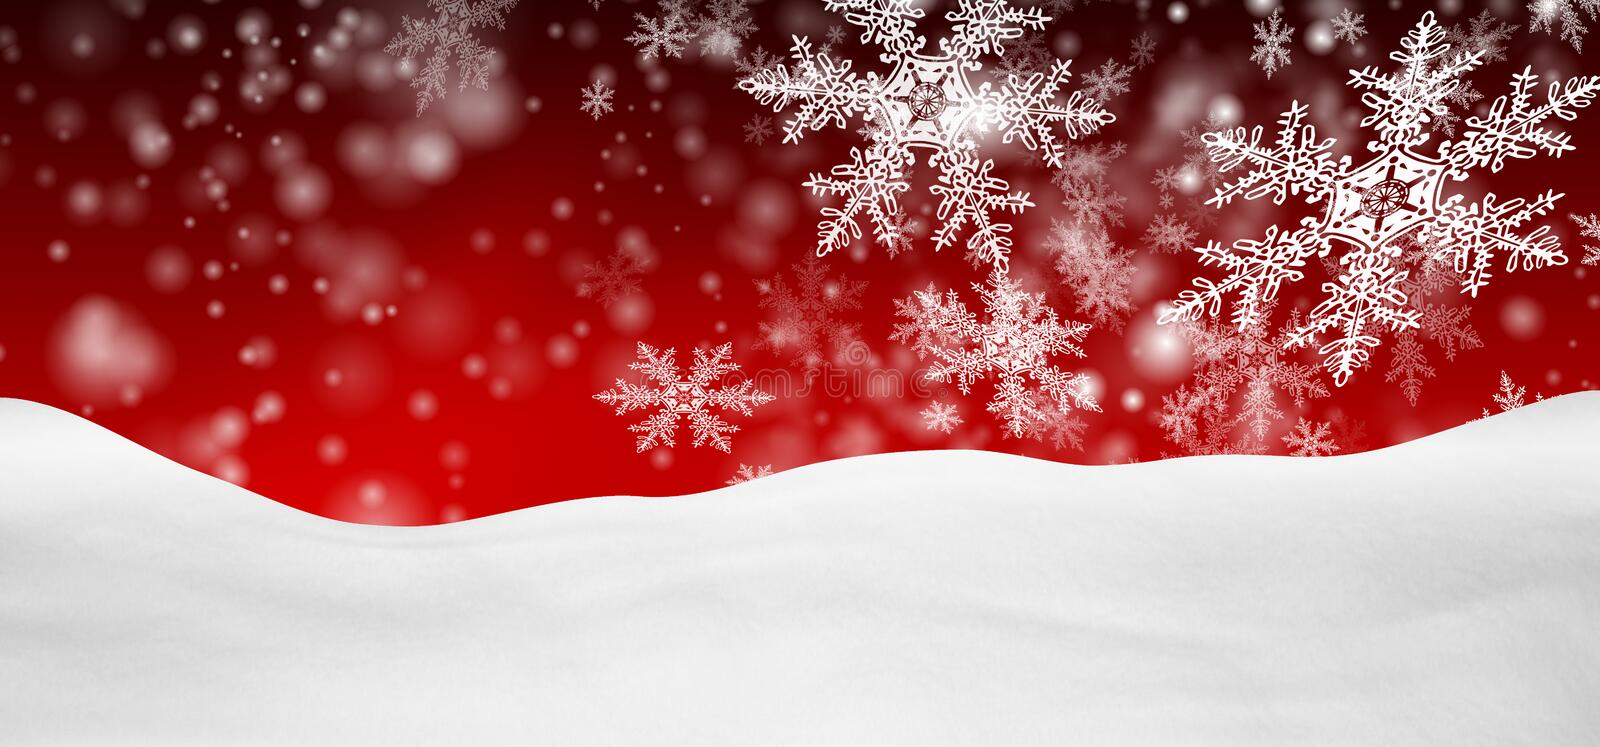 Abstract Red Background Panorama Winter Landscape with Falling Snowflakes stock photos